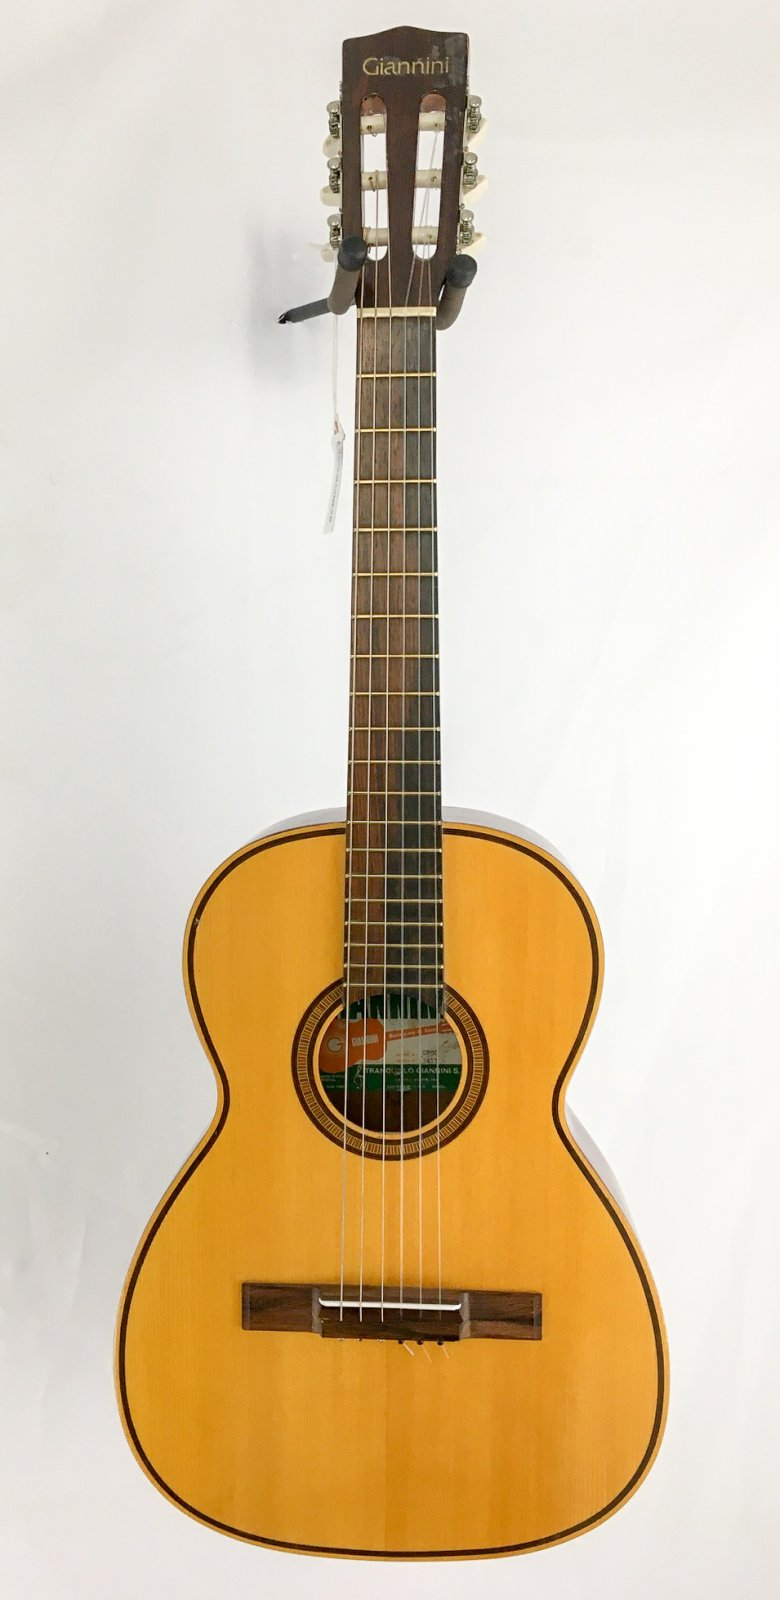 Vintage Gianinni GN50 Classical